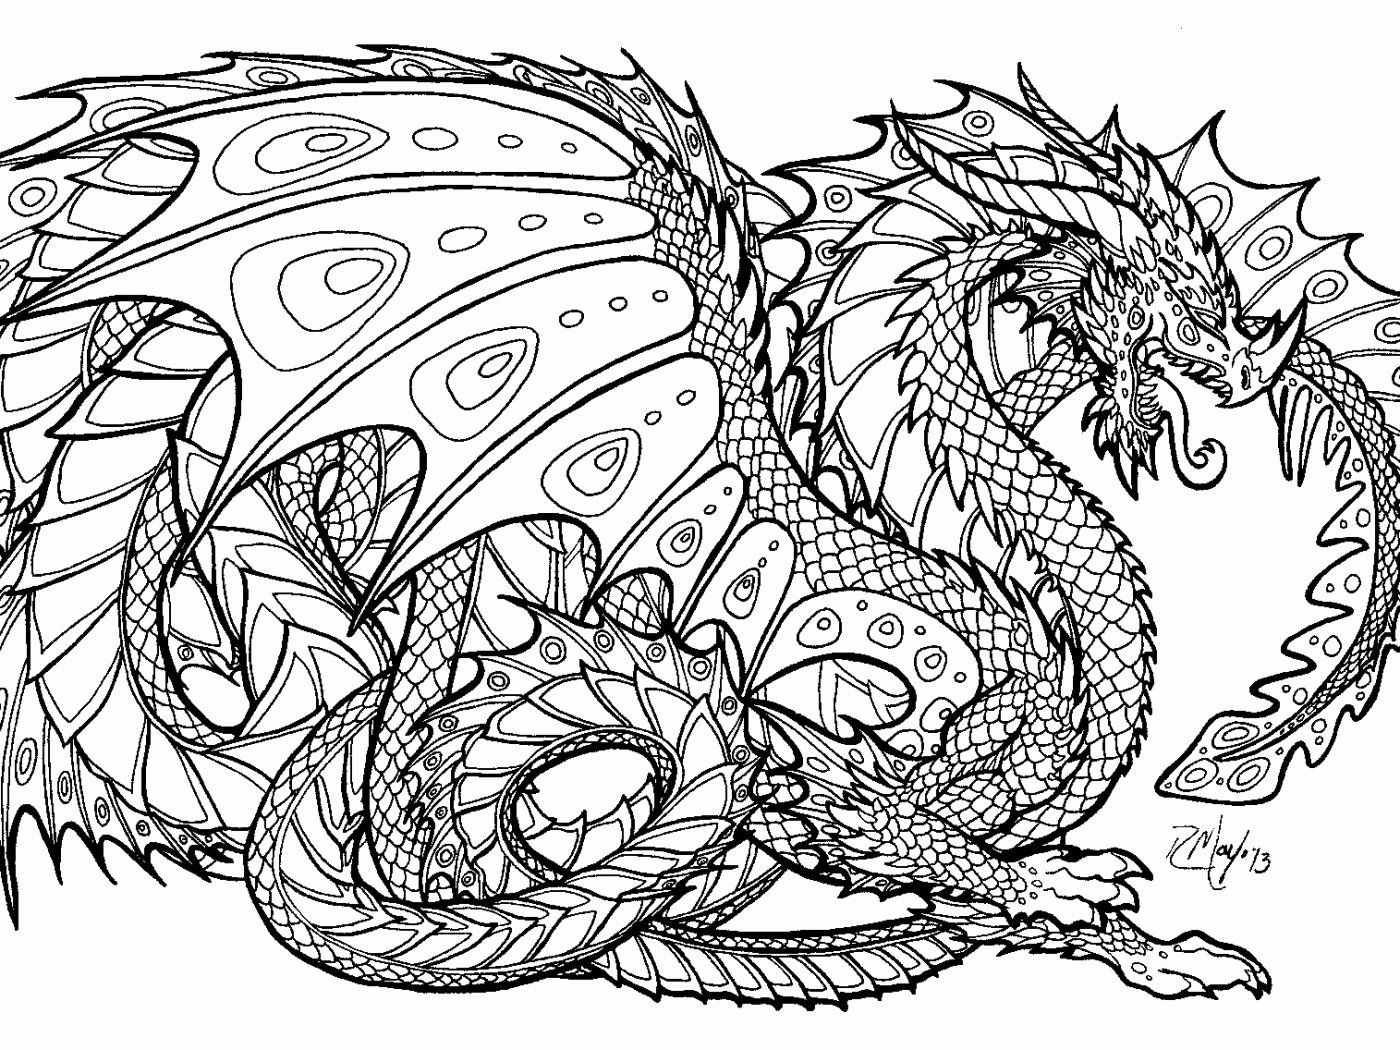 Animals Coloring Book Pdf Best Of Coloring 55 Fantastic Adault Animal Coloring Pages In 2020 Detailed Coloring Pages Dragon Coloring Page Animal Coloring Books